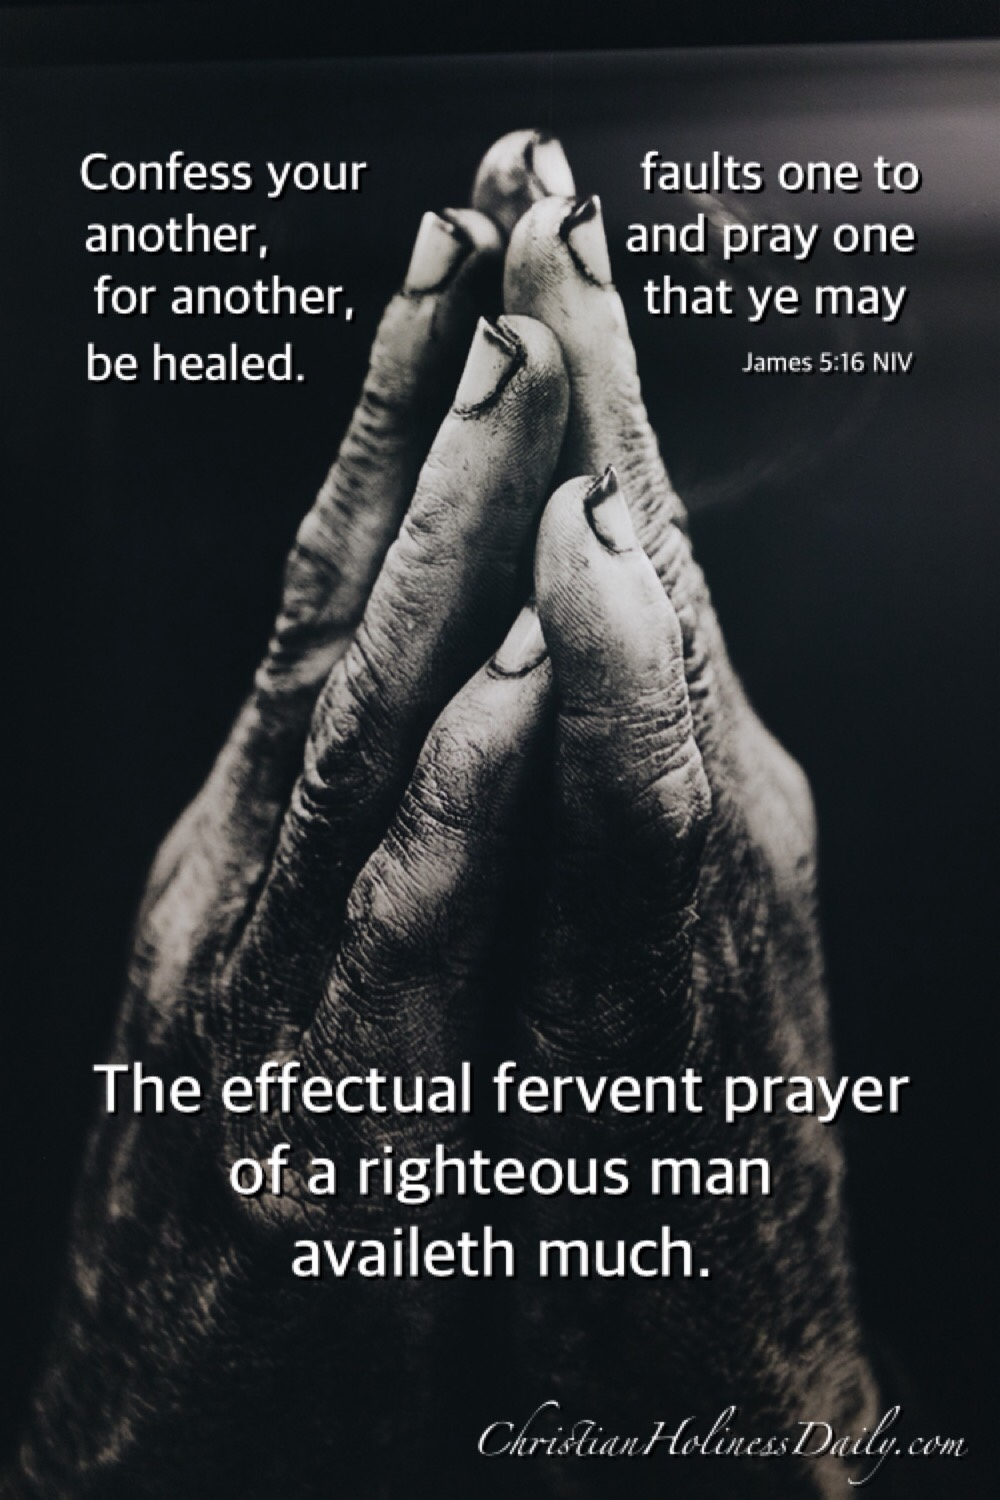 The prayers of the righteous avails much.